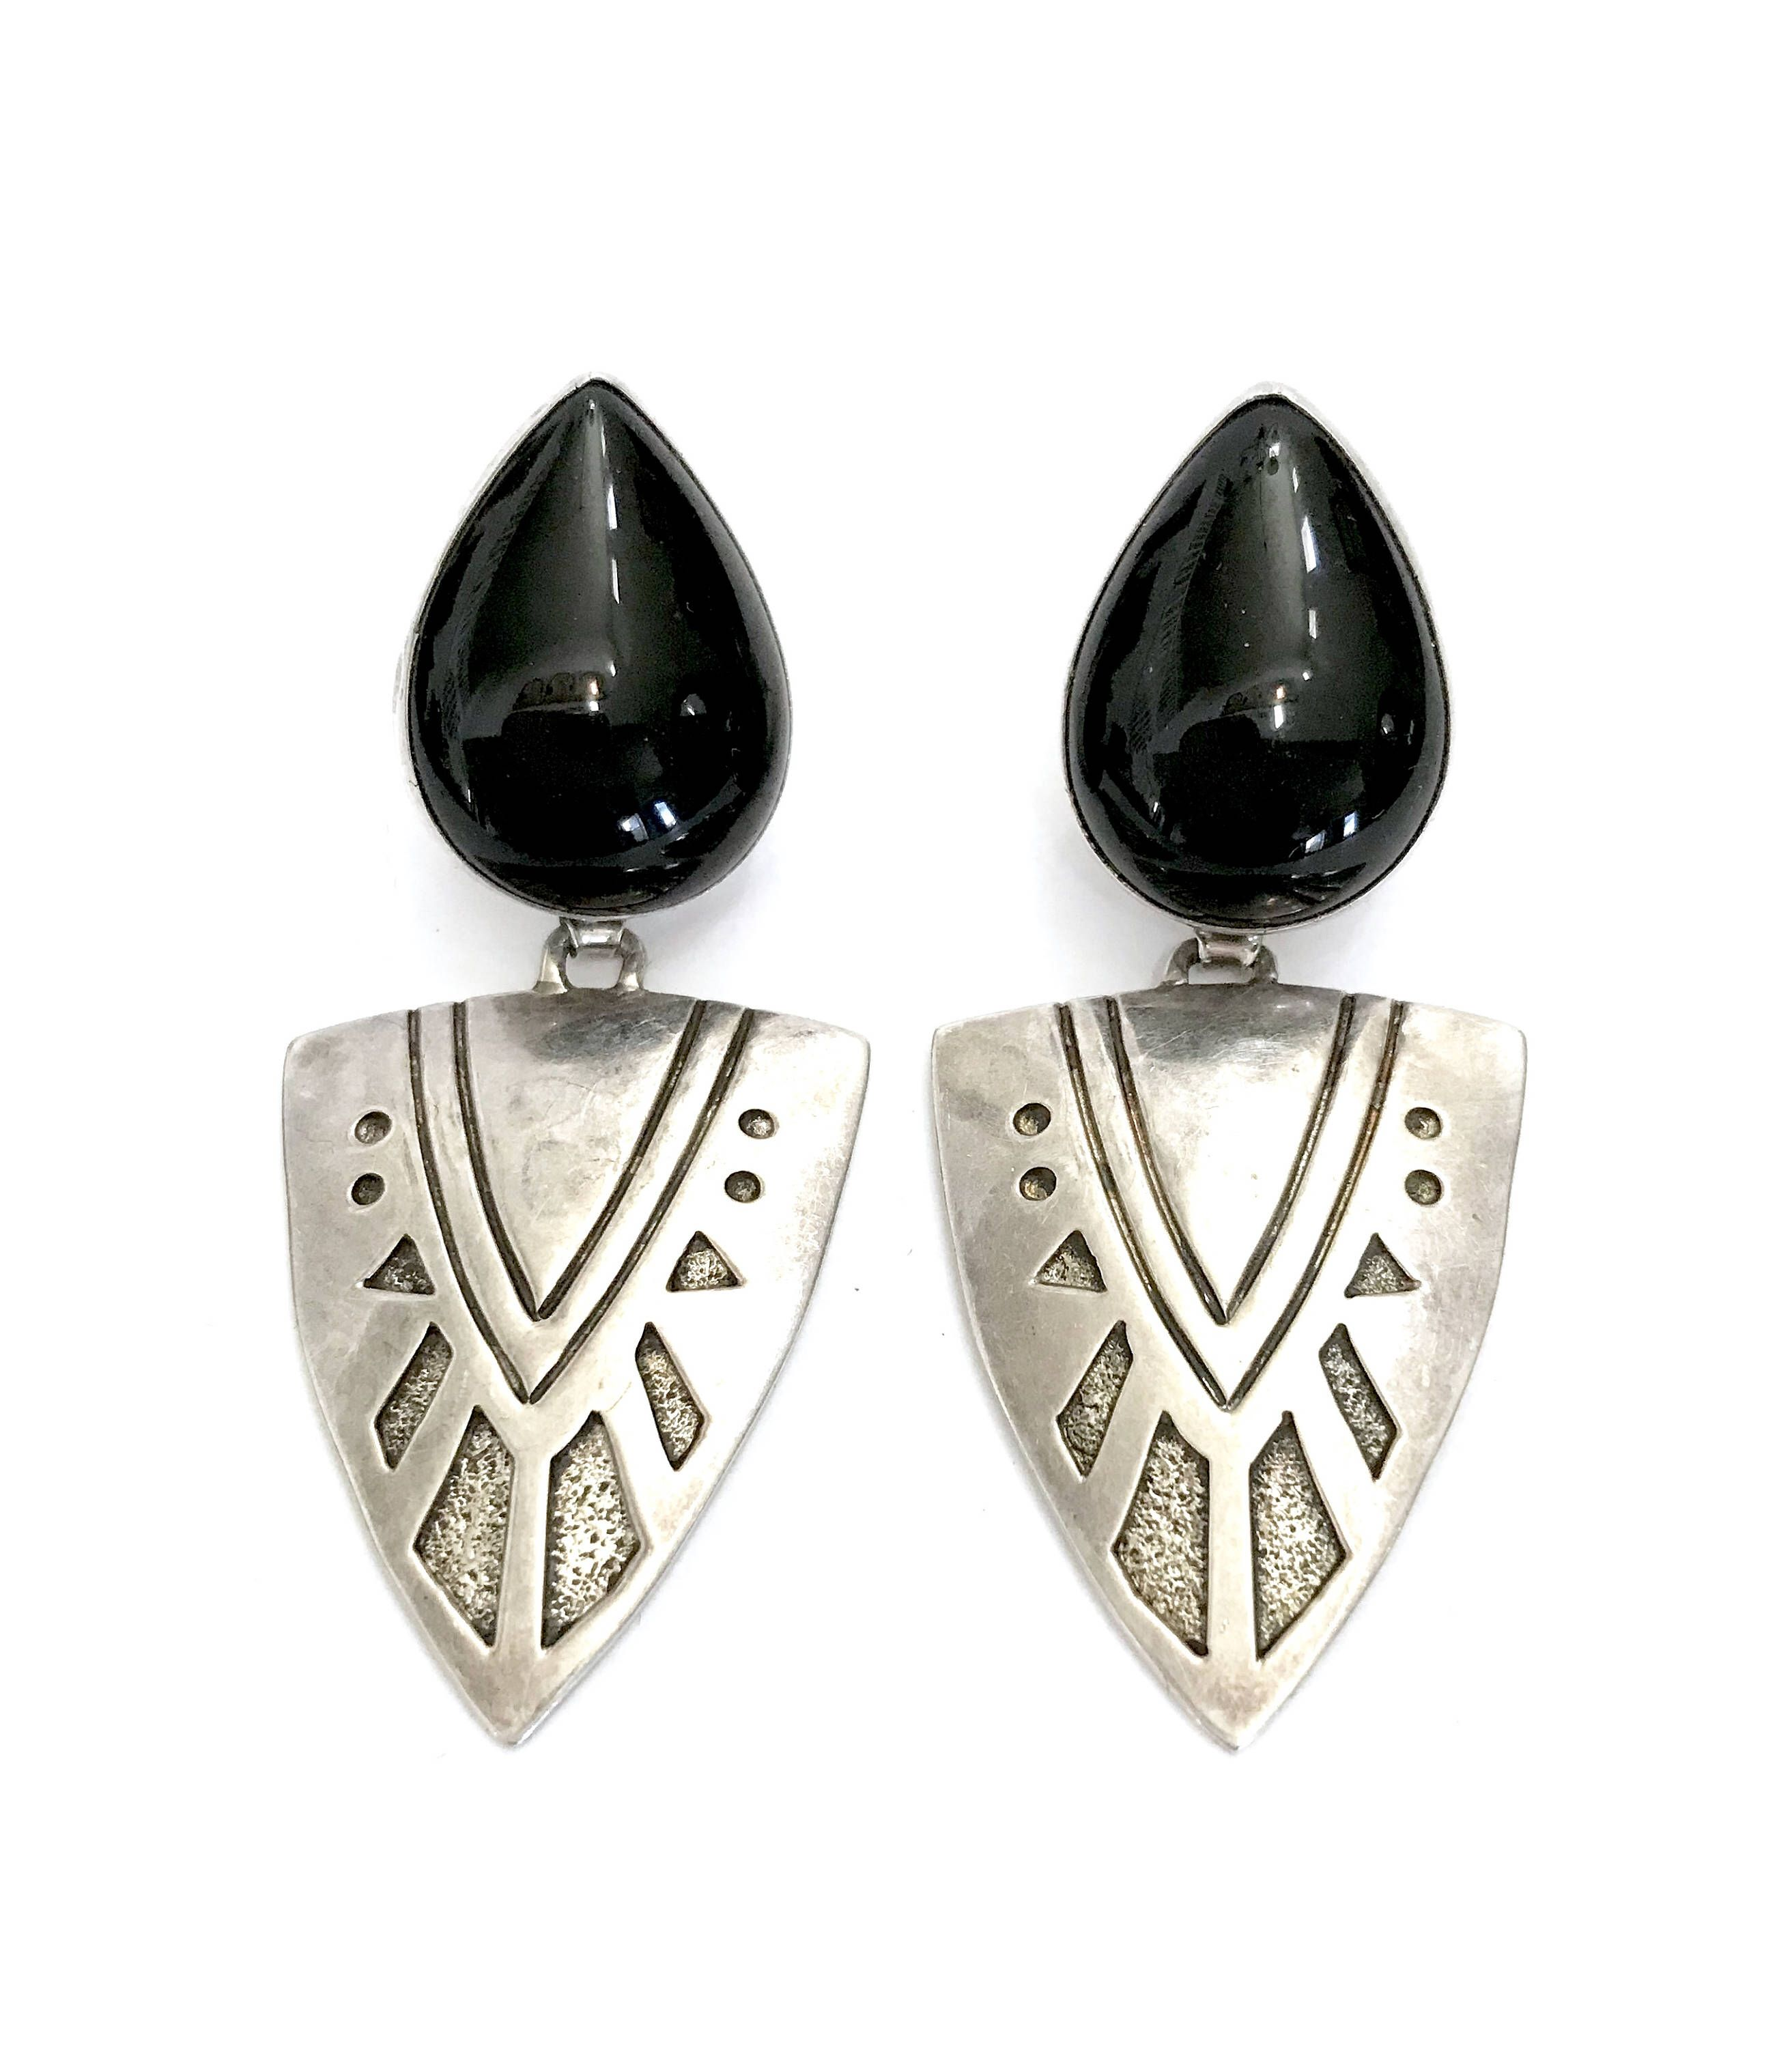 Excited to share the latest addition to my etsy shop navajo allen excited to share the latest addition to my shop navajo allen paula boyd earrings sterling silver overlay dangles tooled textured symbols buycottarizona Images